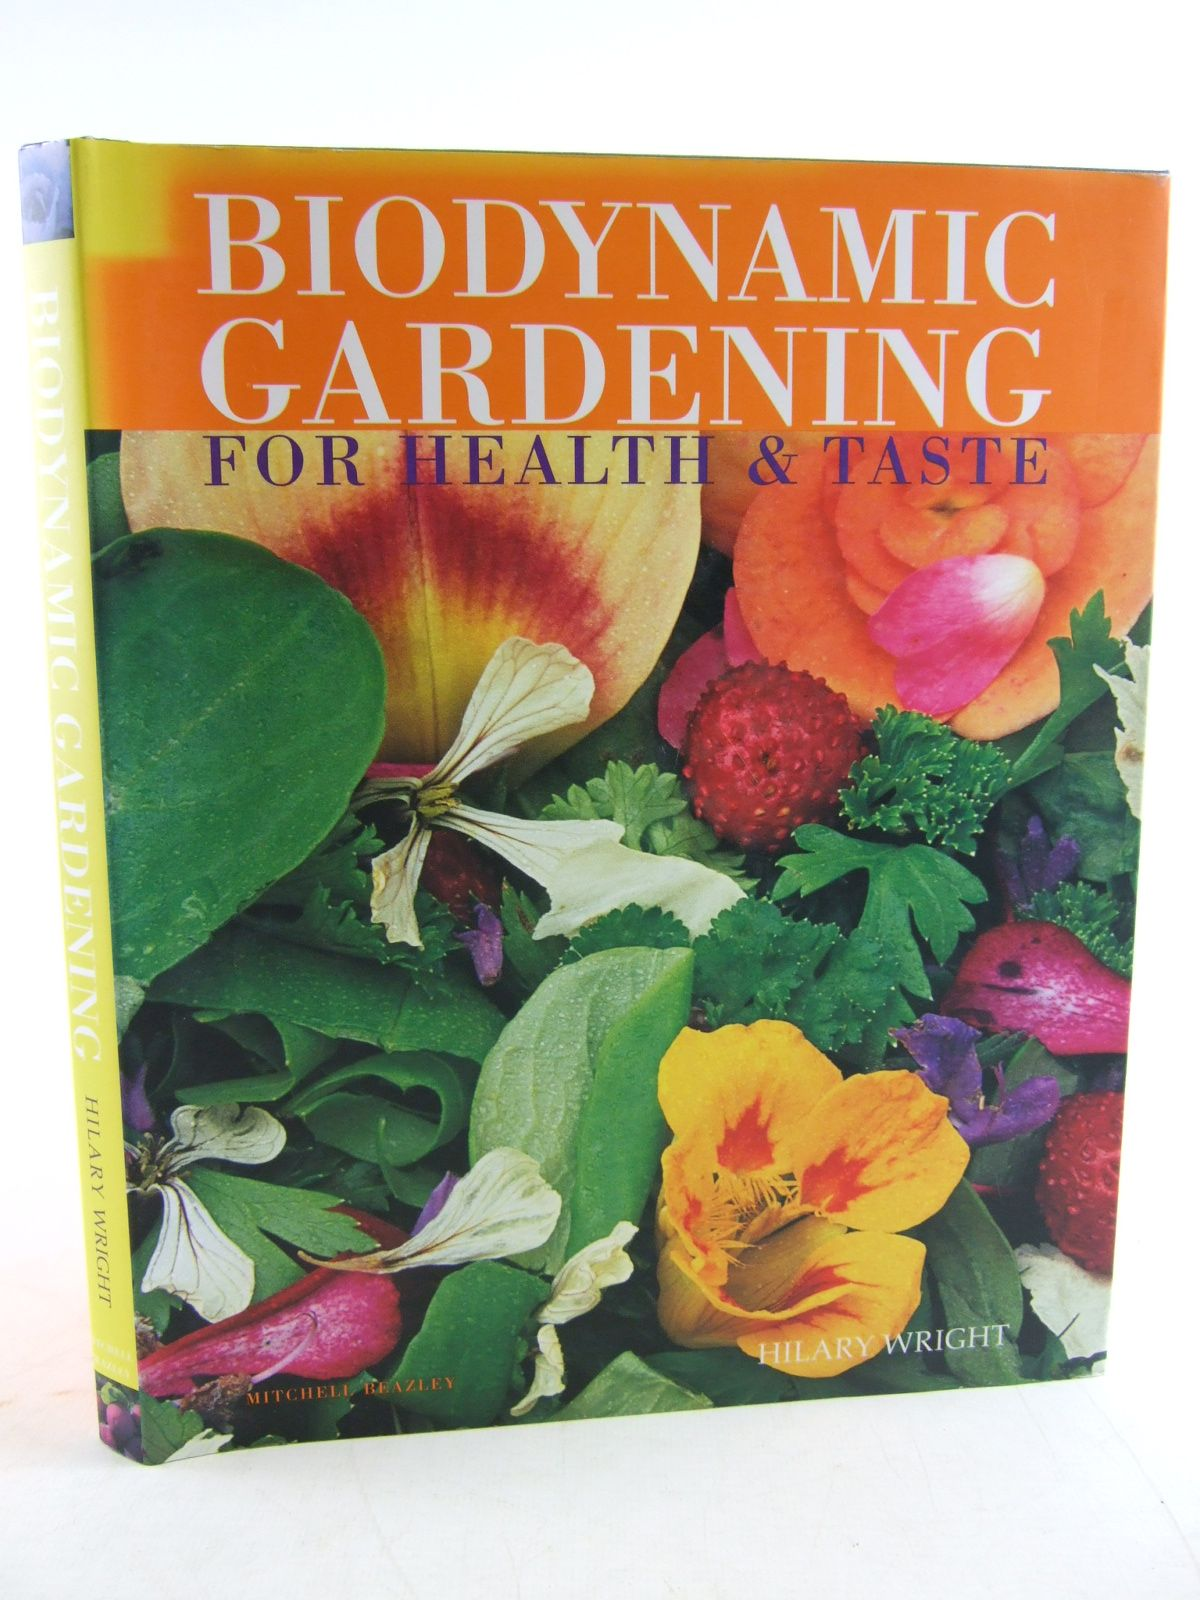 Photo of BIODYNAMIC GARDENING FOR HEALTH & FLAVOUR written by Wright, Hilary published by Mitchell Beazley (STOCK CODE: 1805995)  for sale by Stella & Rose's Books